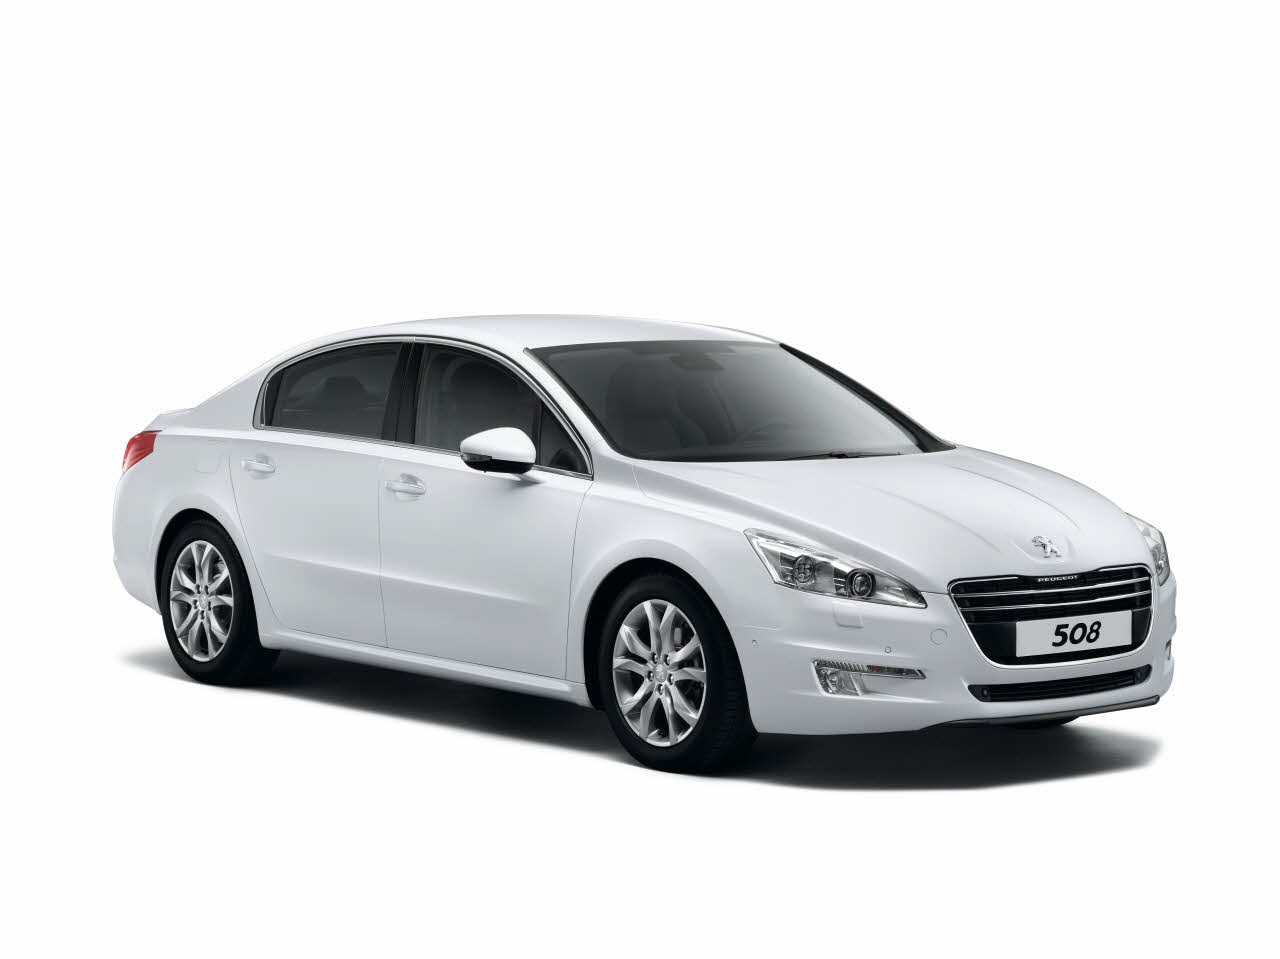 Peugeot 508 2014 Allure in Bahrain: New Car Prices, Specs, Reviews ...